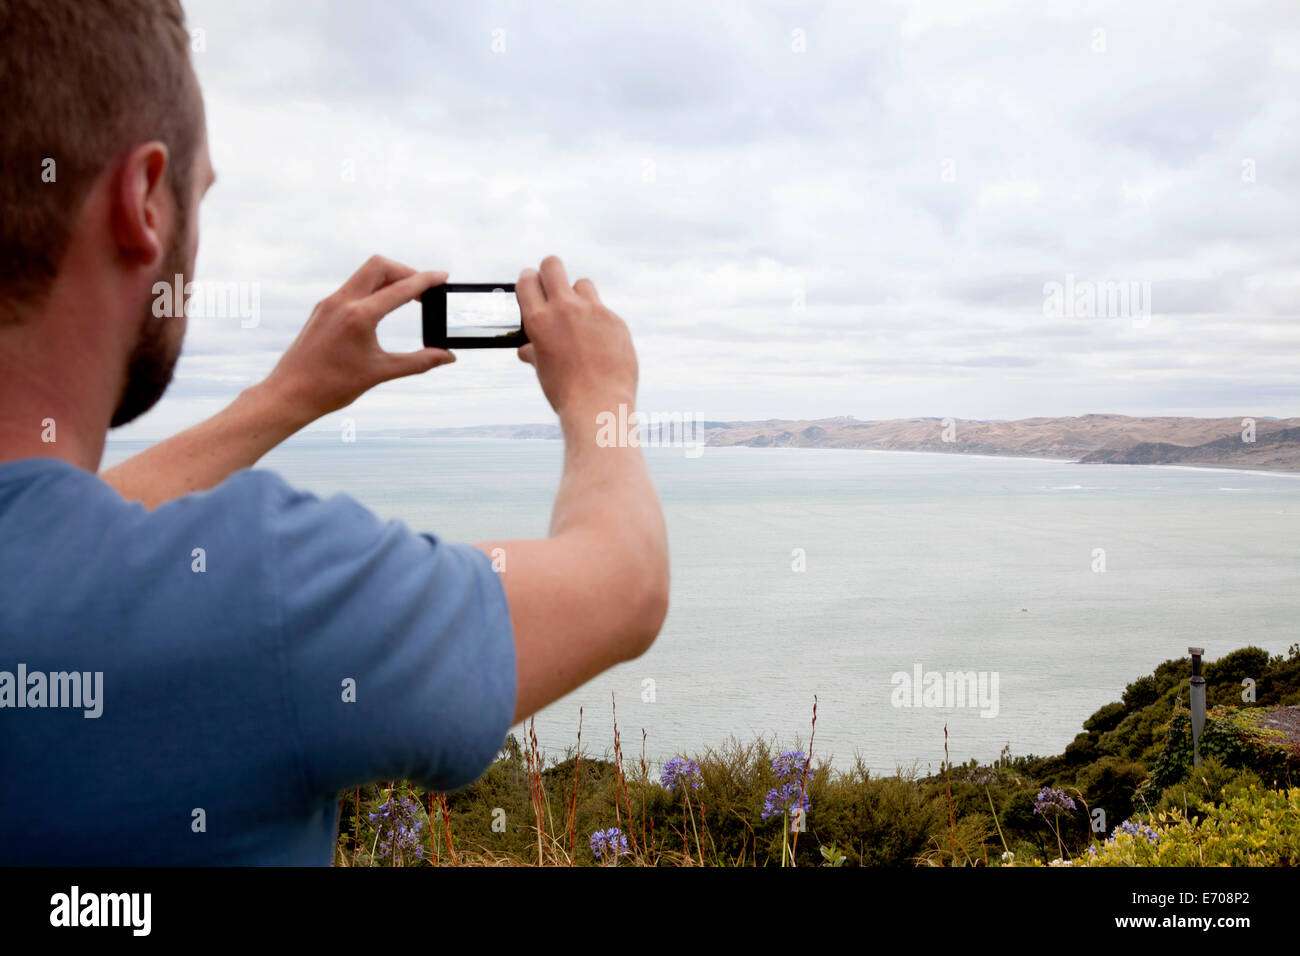 Rear cropped view of young man photographing sea with smartphone - Stock Image